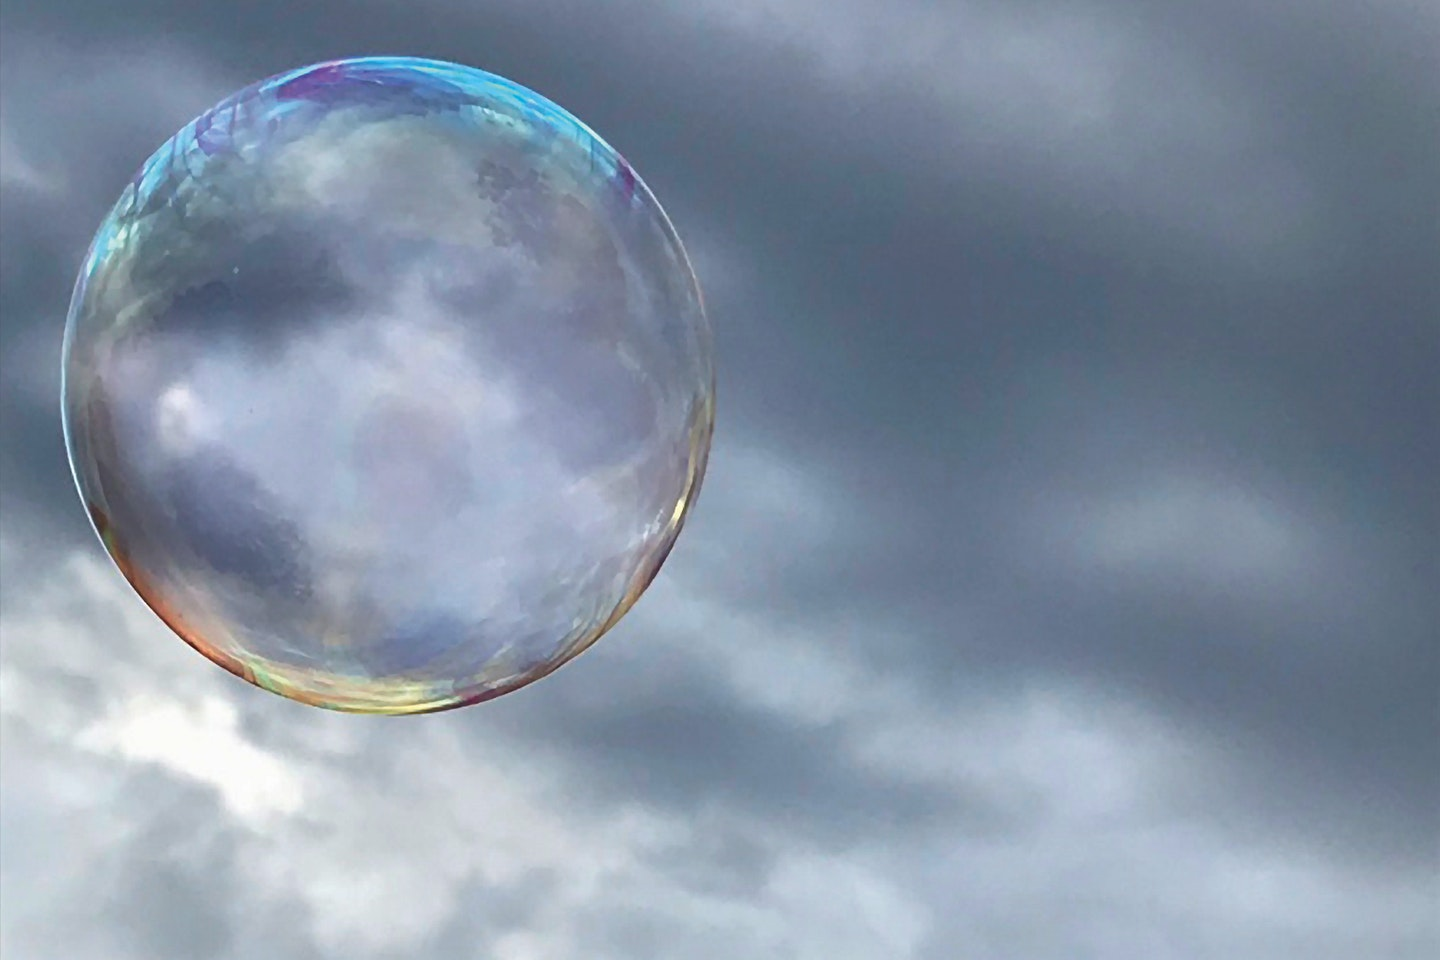 Laura took this photo as part of a series of soap bubbles on a grey afternoon in the local park while playing with her 2 sisters. Photography became a passion of hers during lockdown and homeschooling.